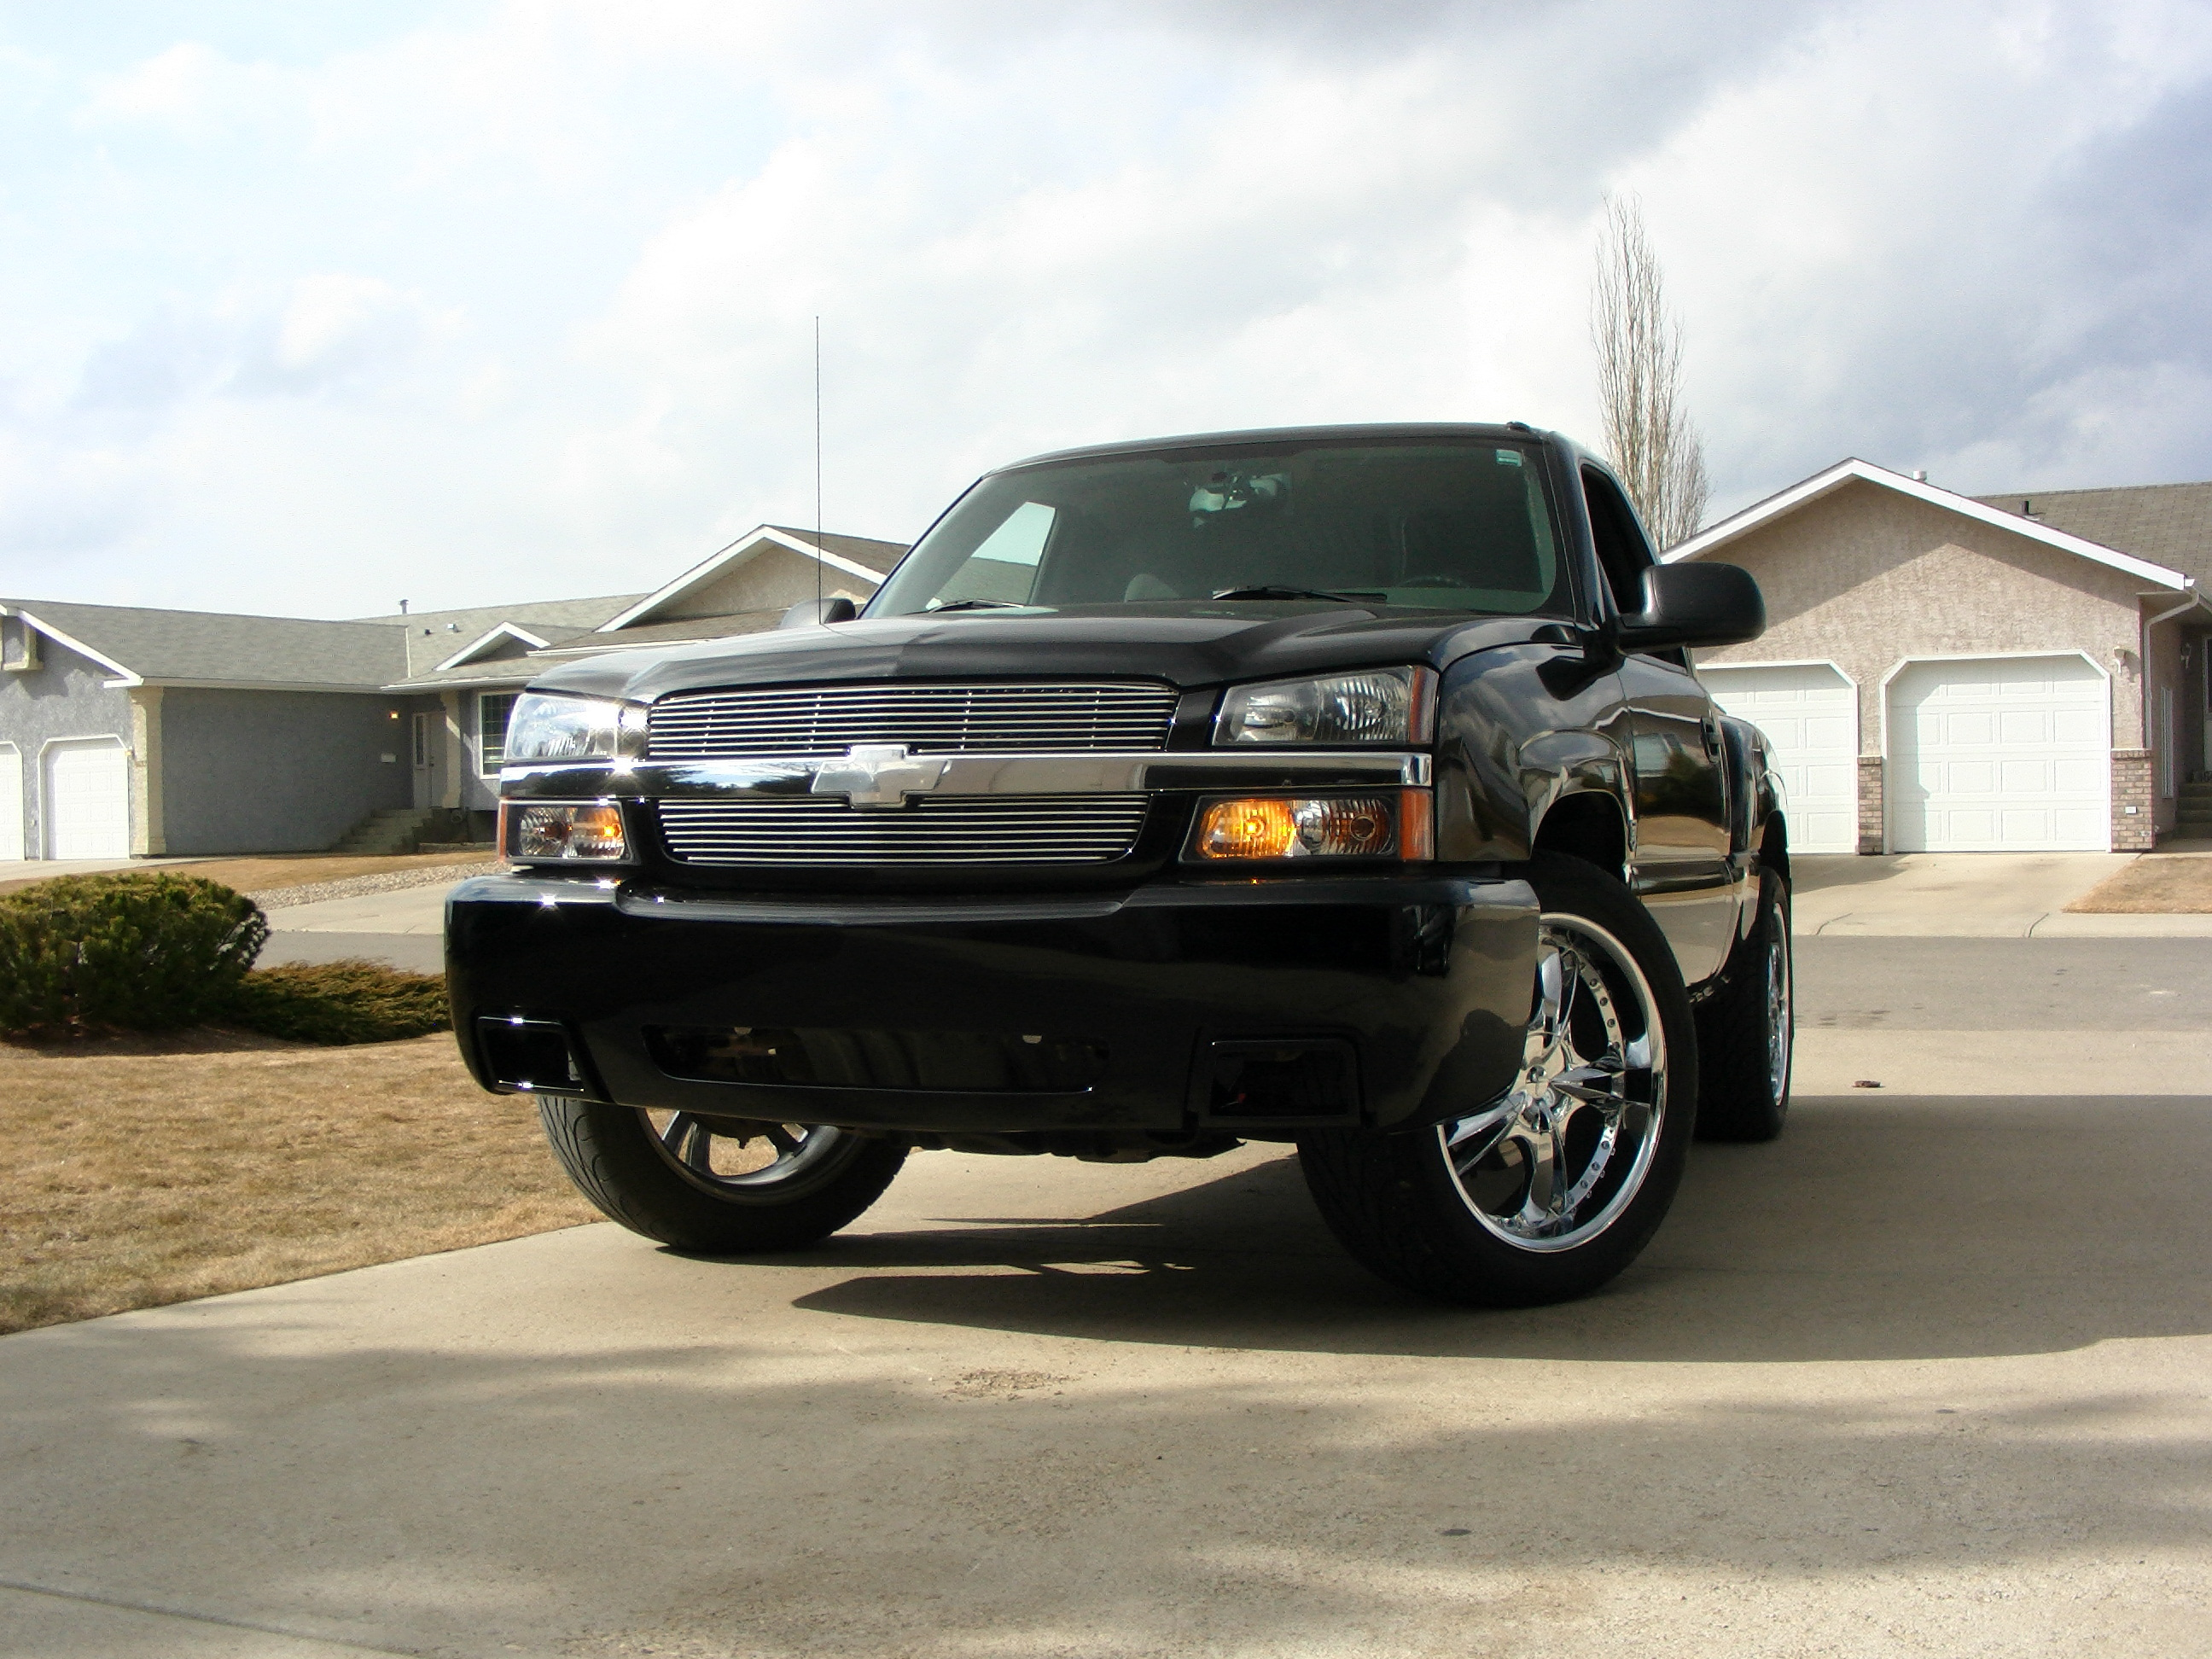 huisman 2005 chevrolet silverado 1500 regular cab specs photos modification info at cardomain. Black Bedroom Furniture Sets. Home Design Ideas